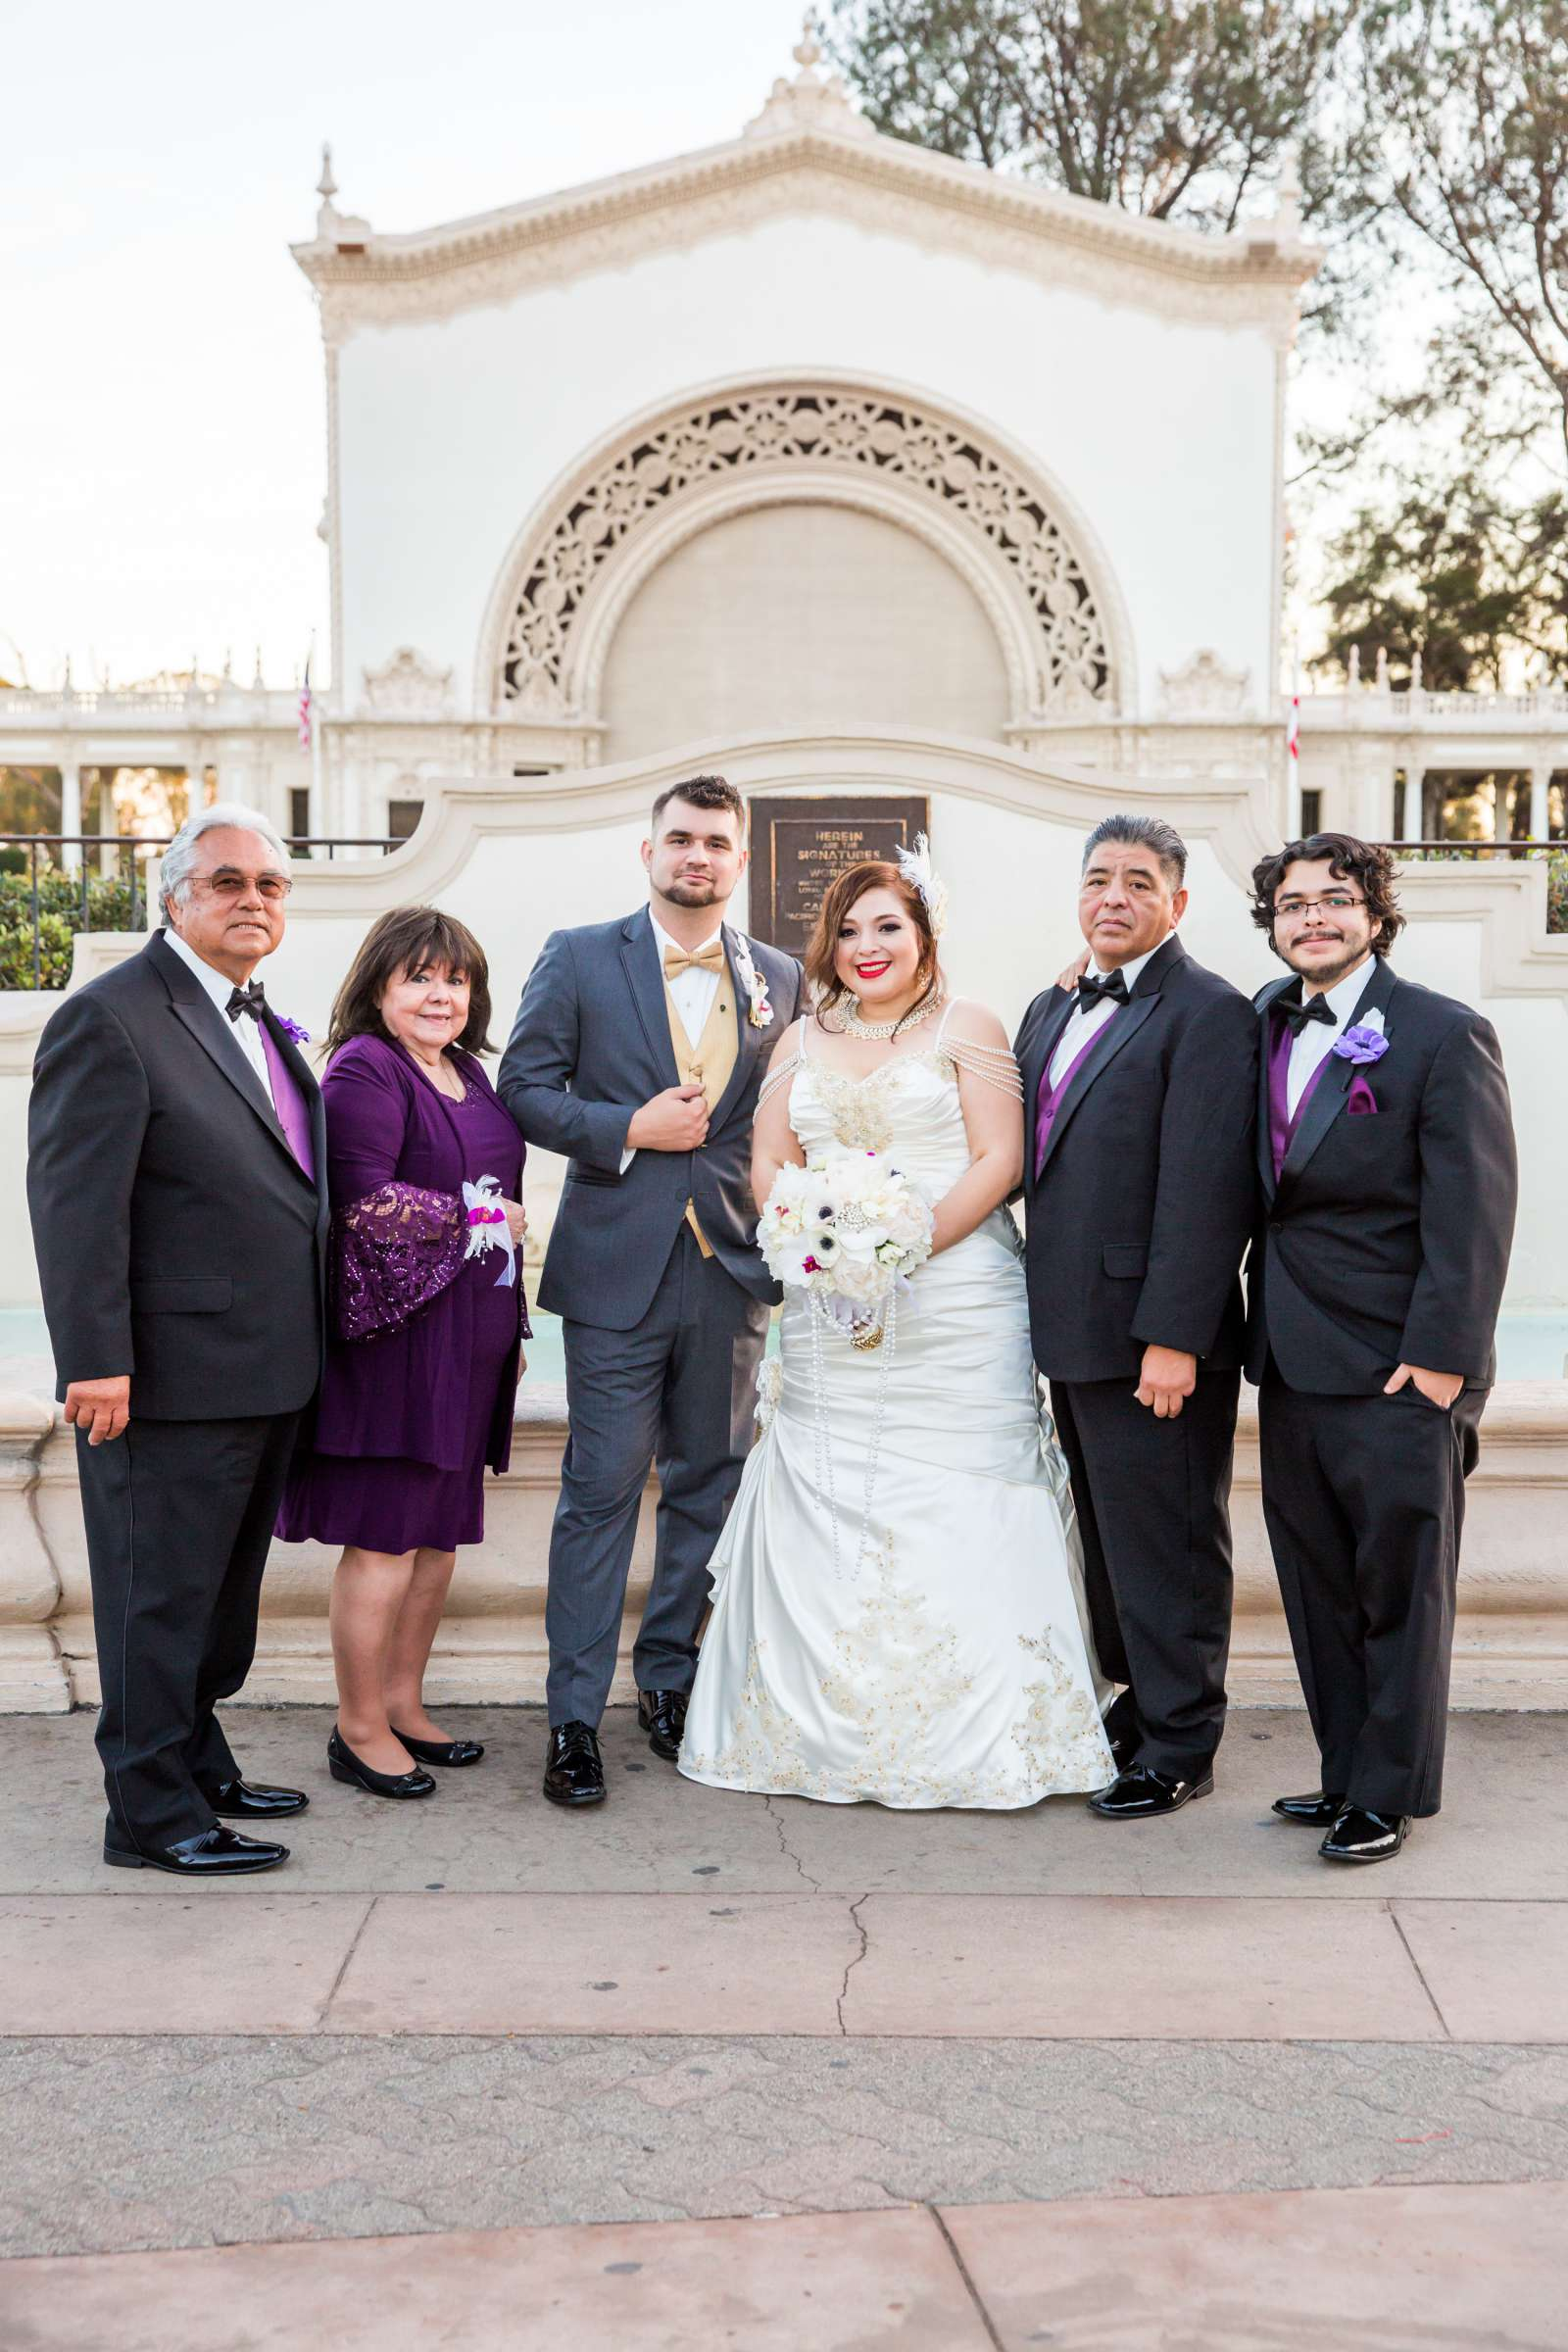 The Prado Wedding coordinated by Breezy Day Weddings, Aalis and Michael Wedding Photo #84 by True Photography